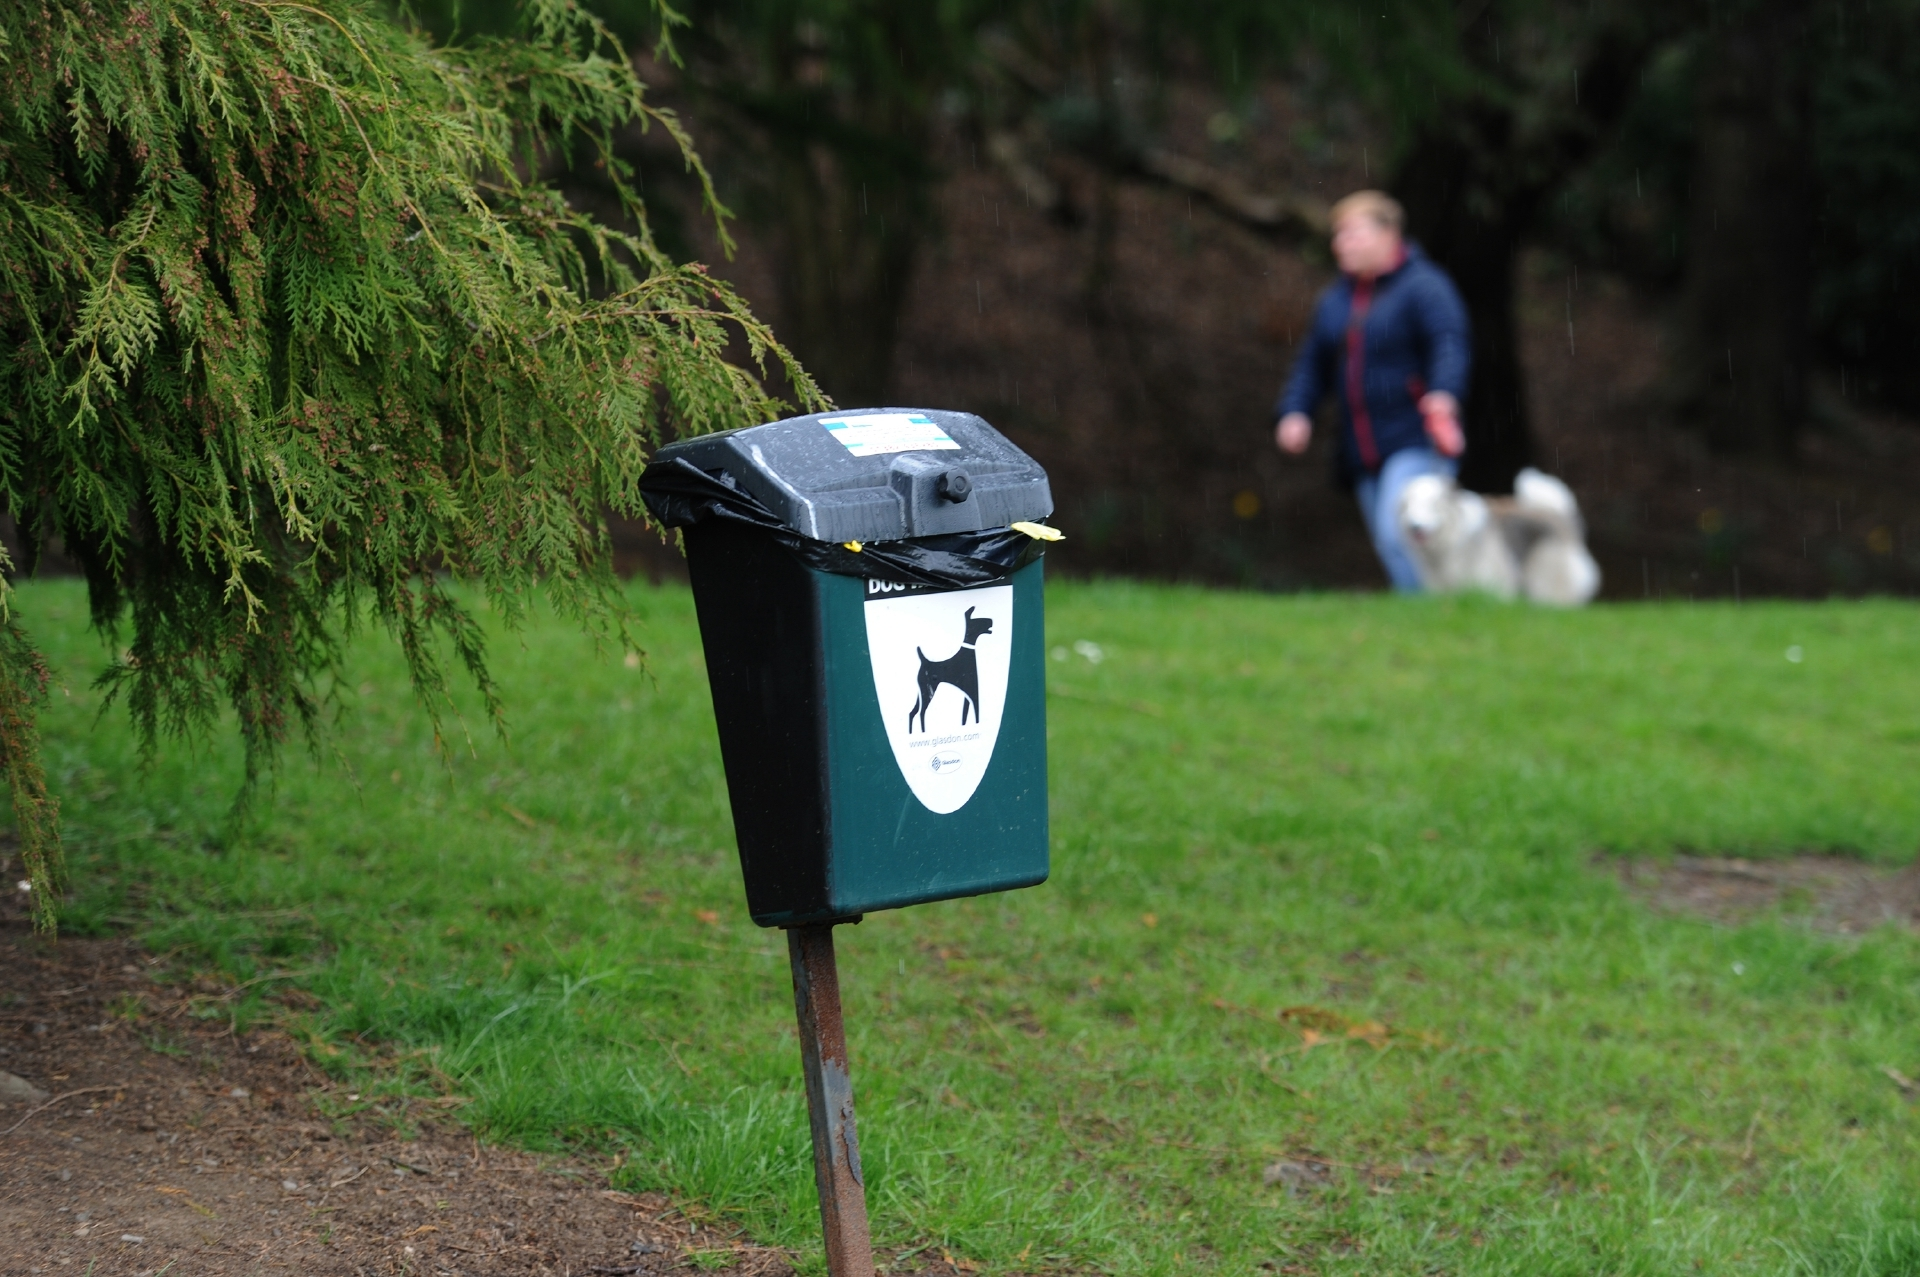 Dog owners have been encouraged to play their part, but council wardens are doing their best.